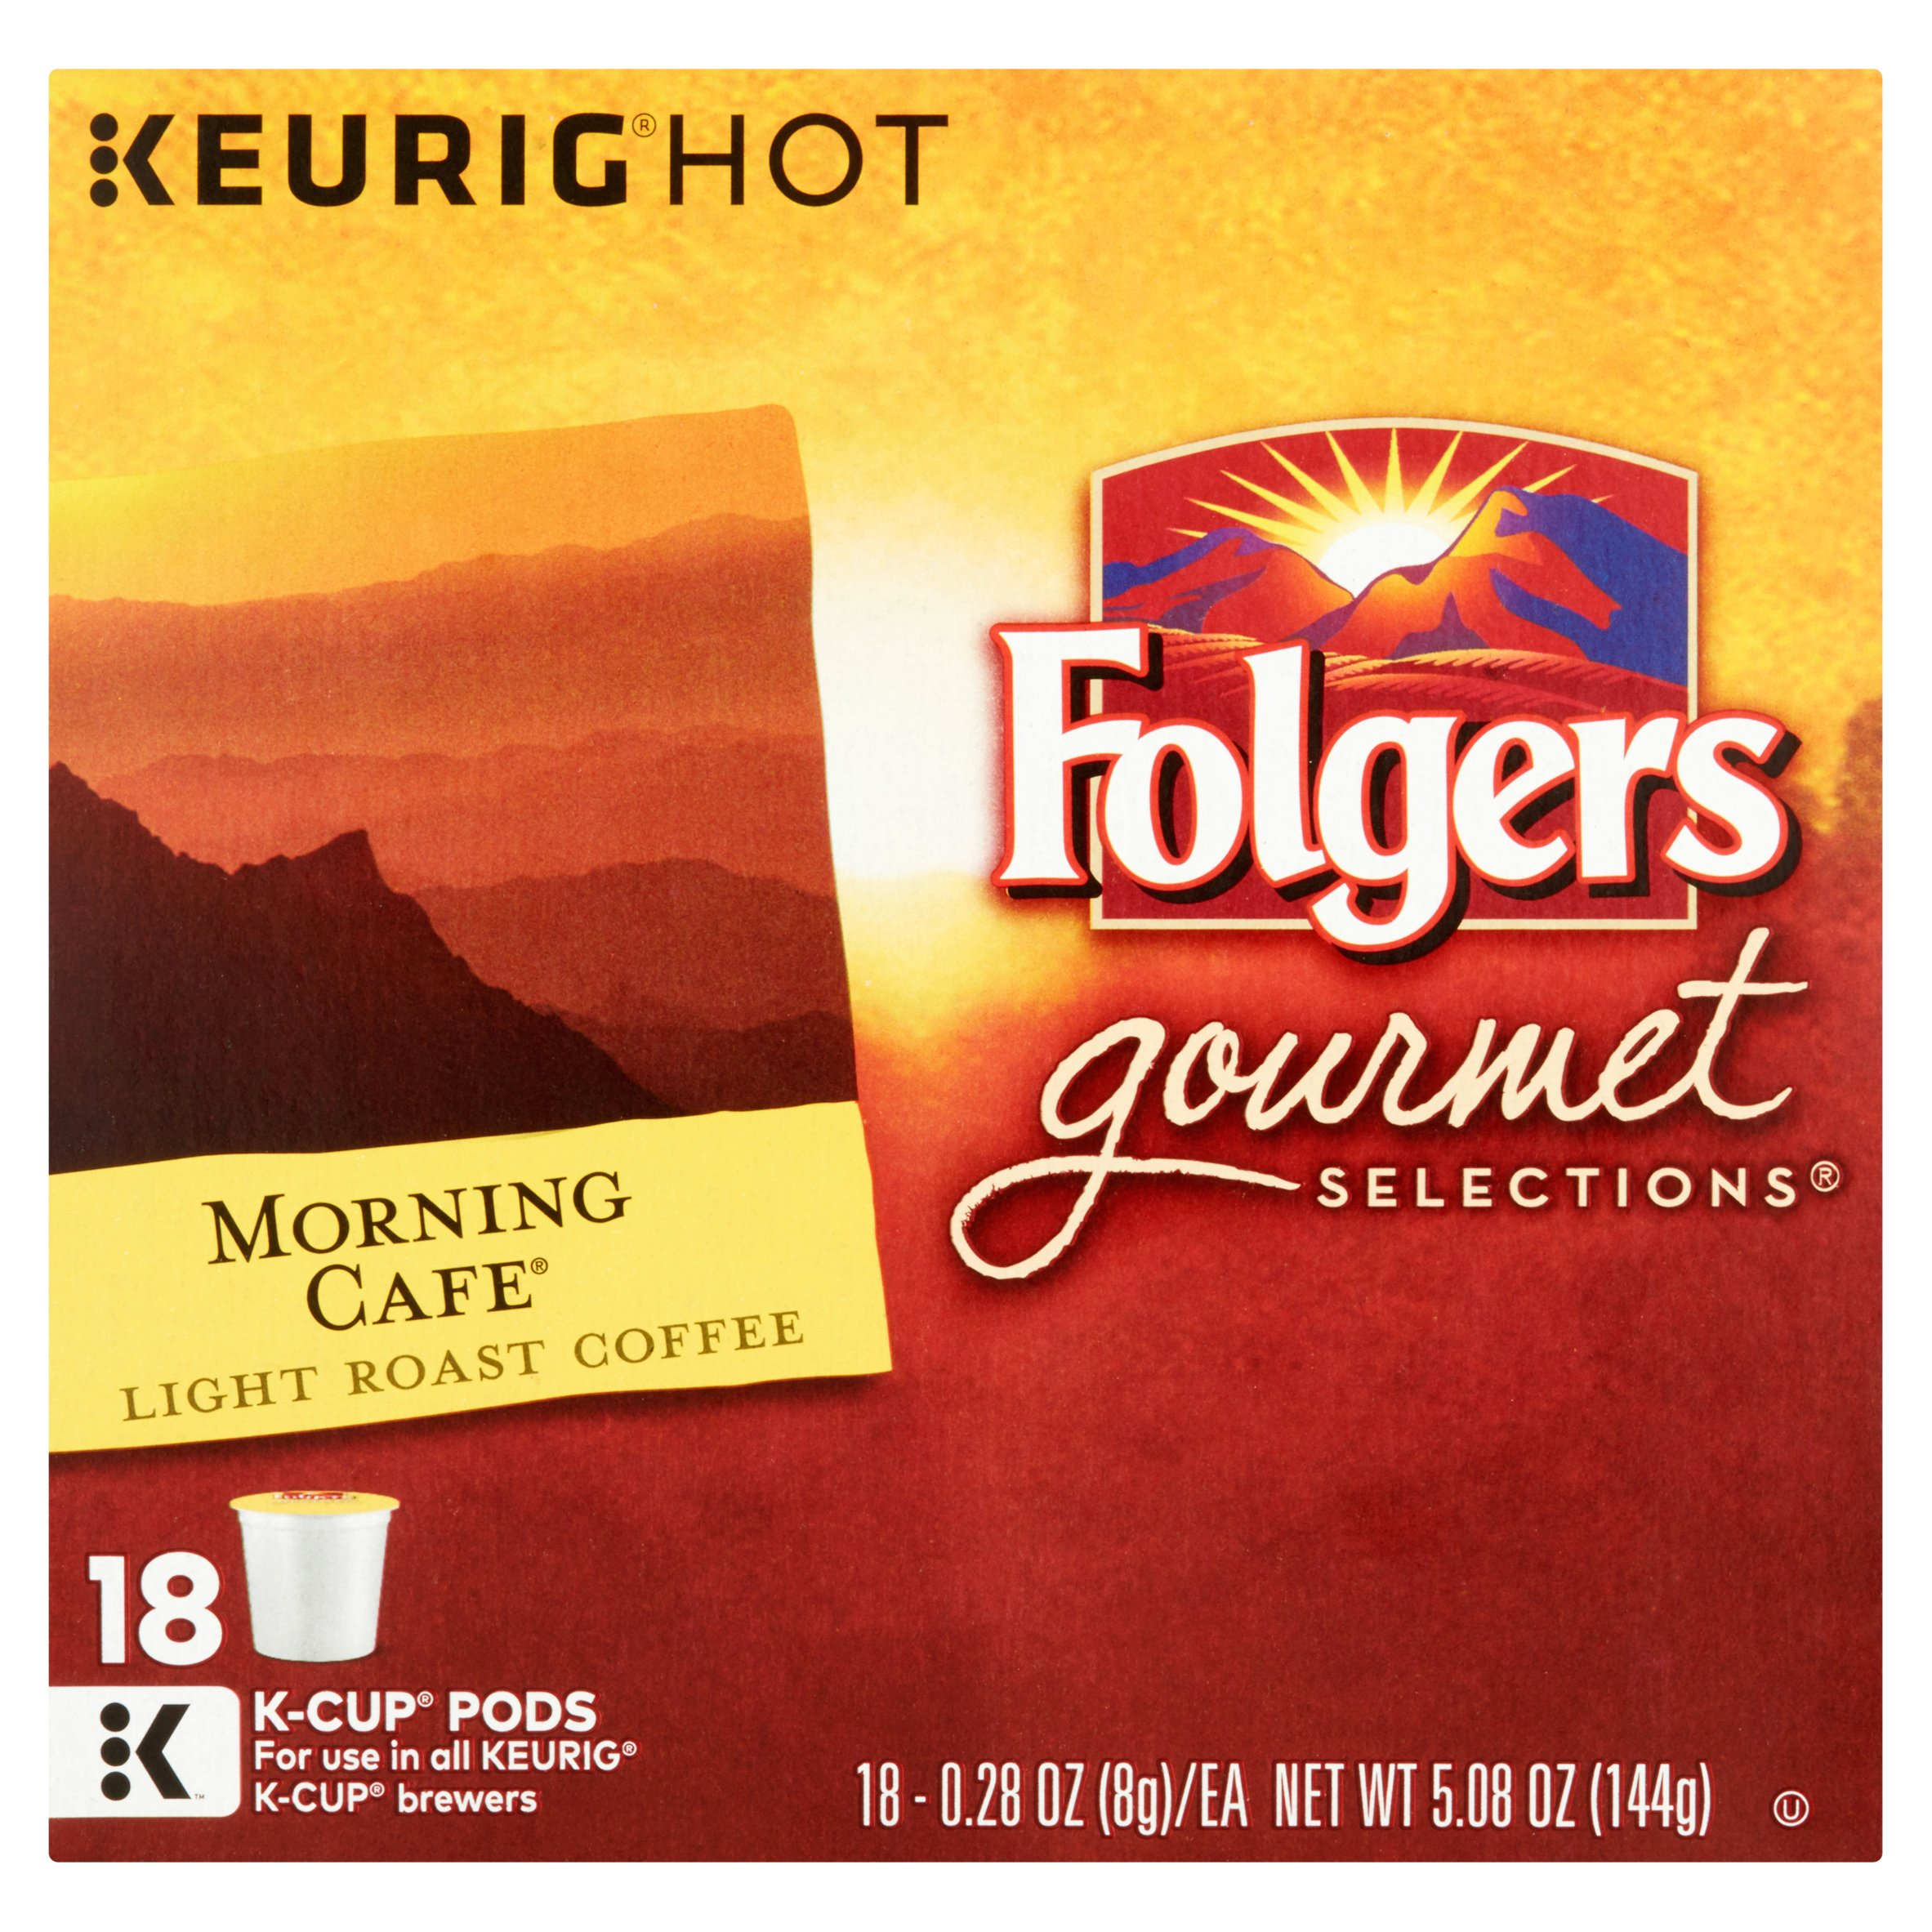 Keurig Hot Folgers Gourmet Selections Morning Cafe Light Roast Coffee, 0.28 oz, 18 count